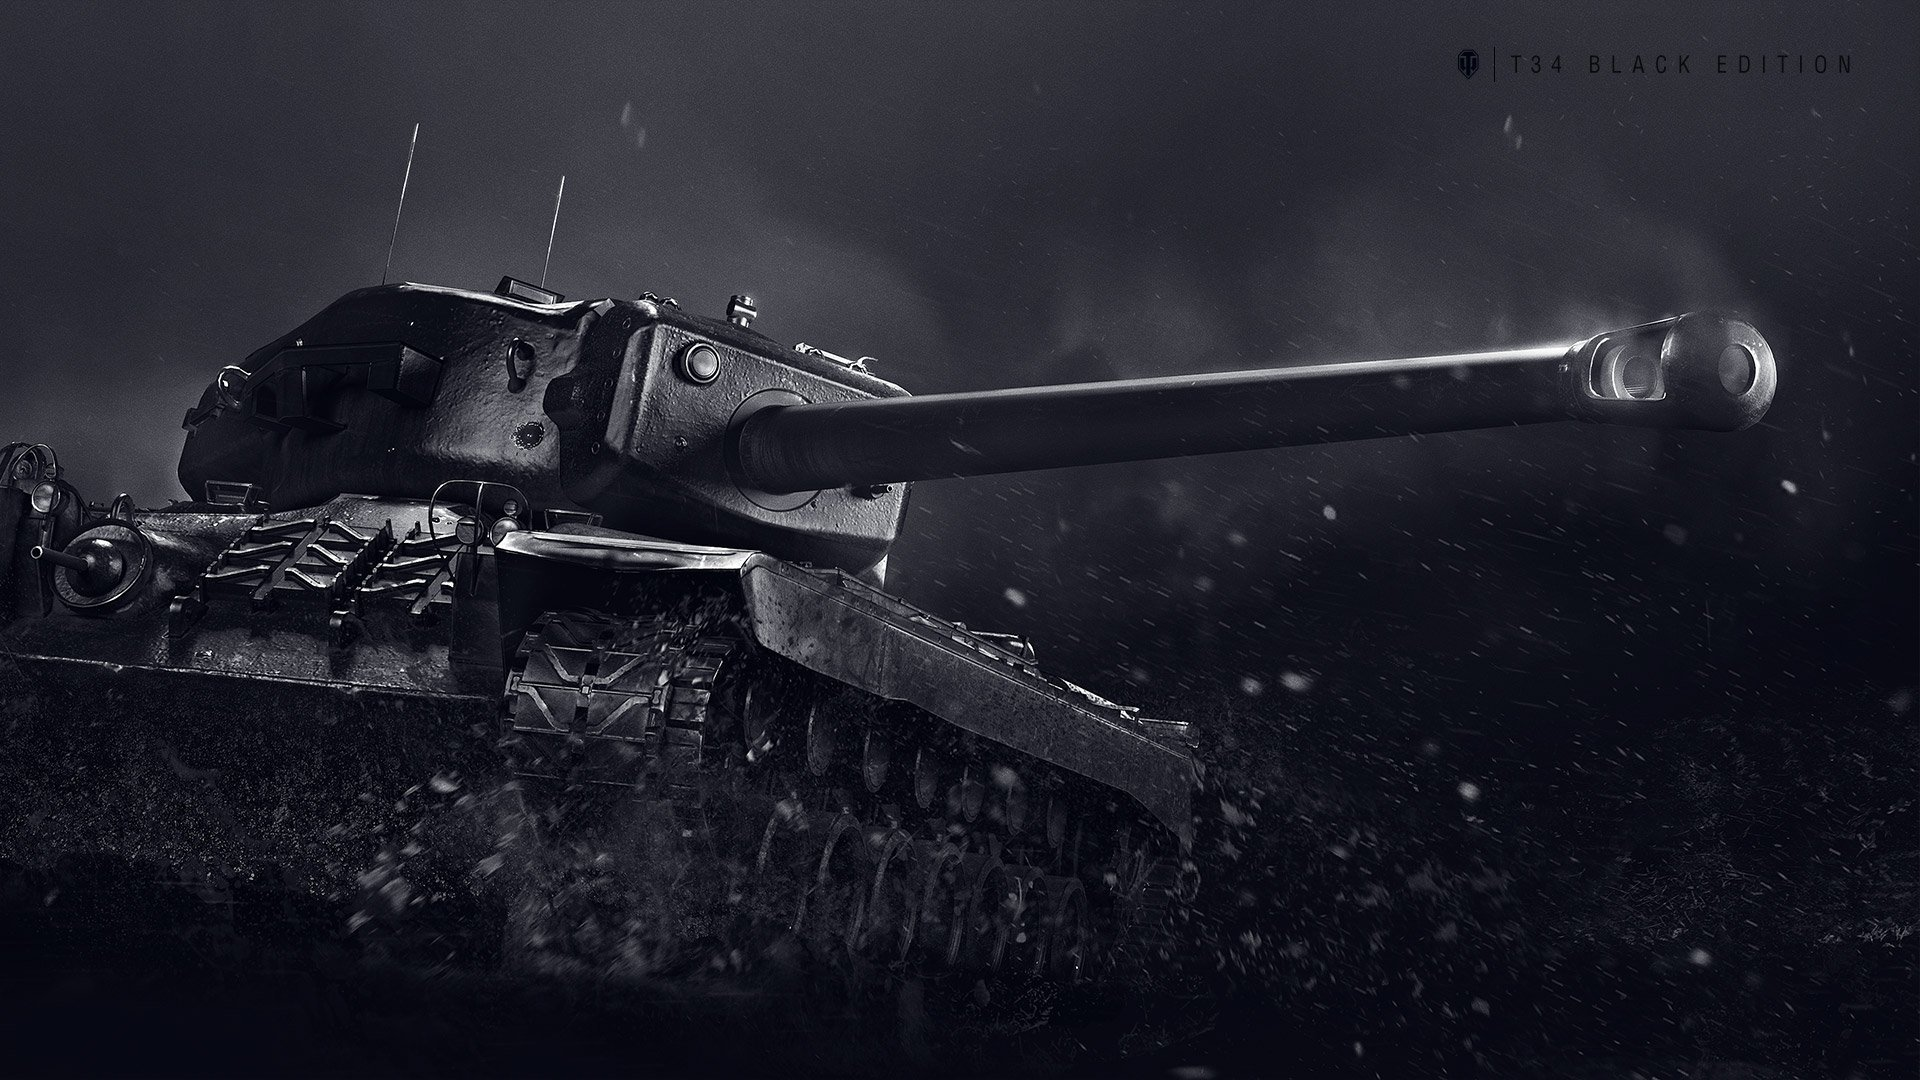 T34 Black Edition Wallpaper - The Armored Patrol